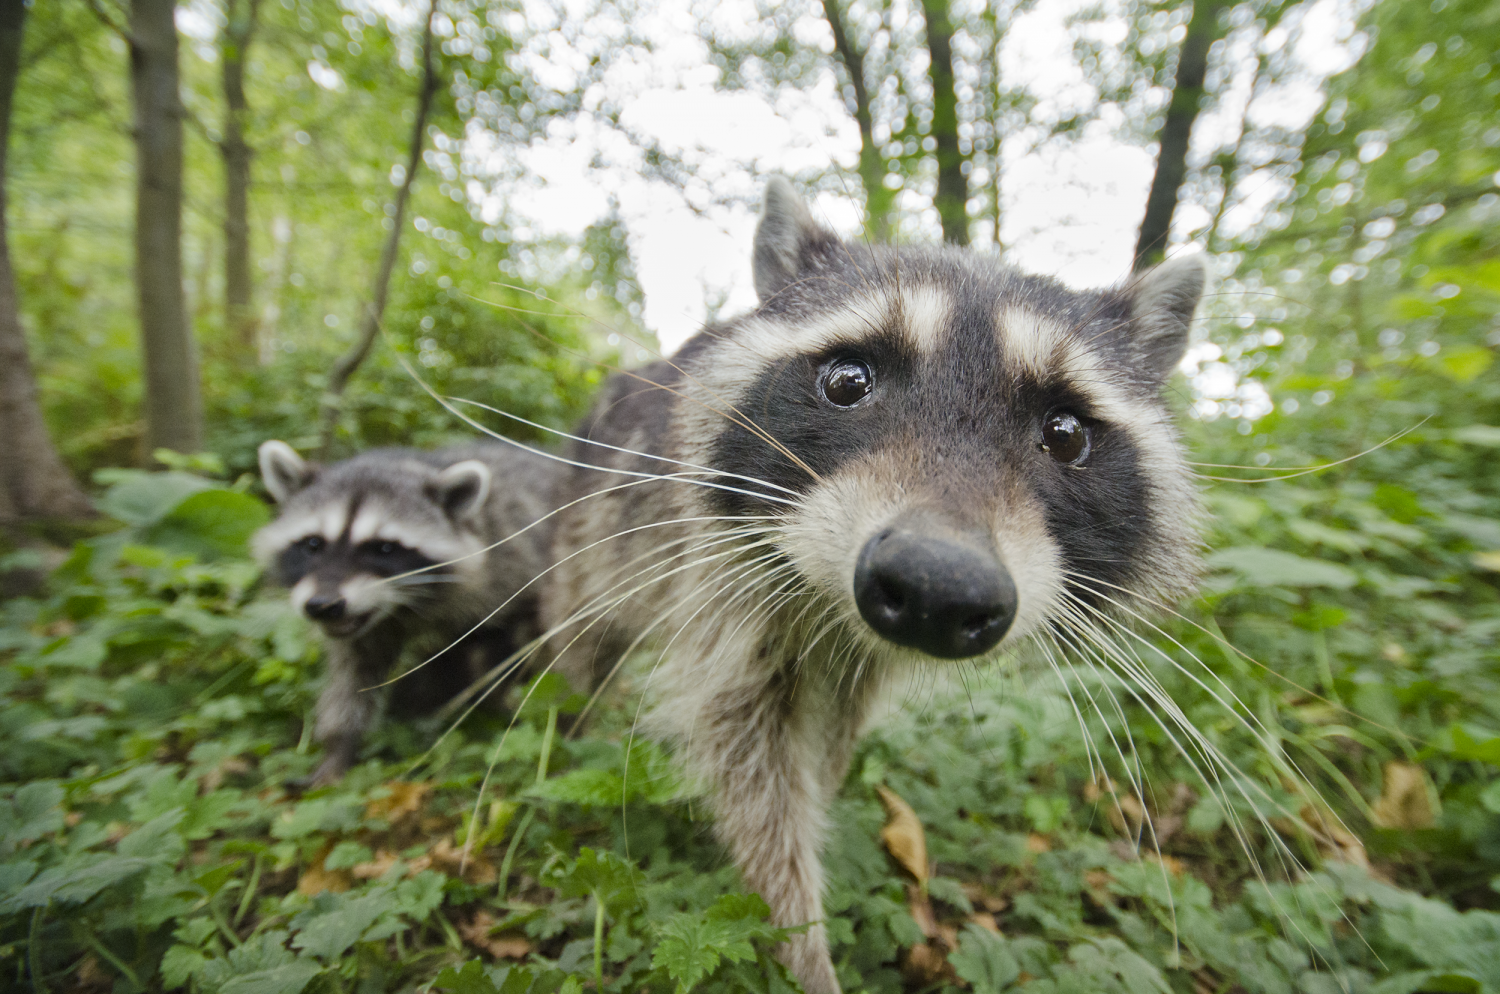 A photo of raccoons